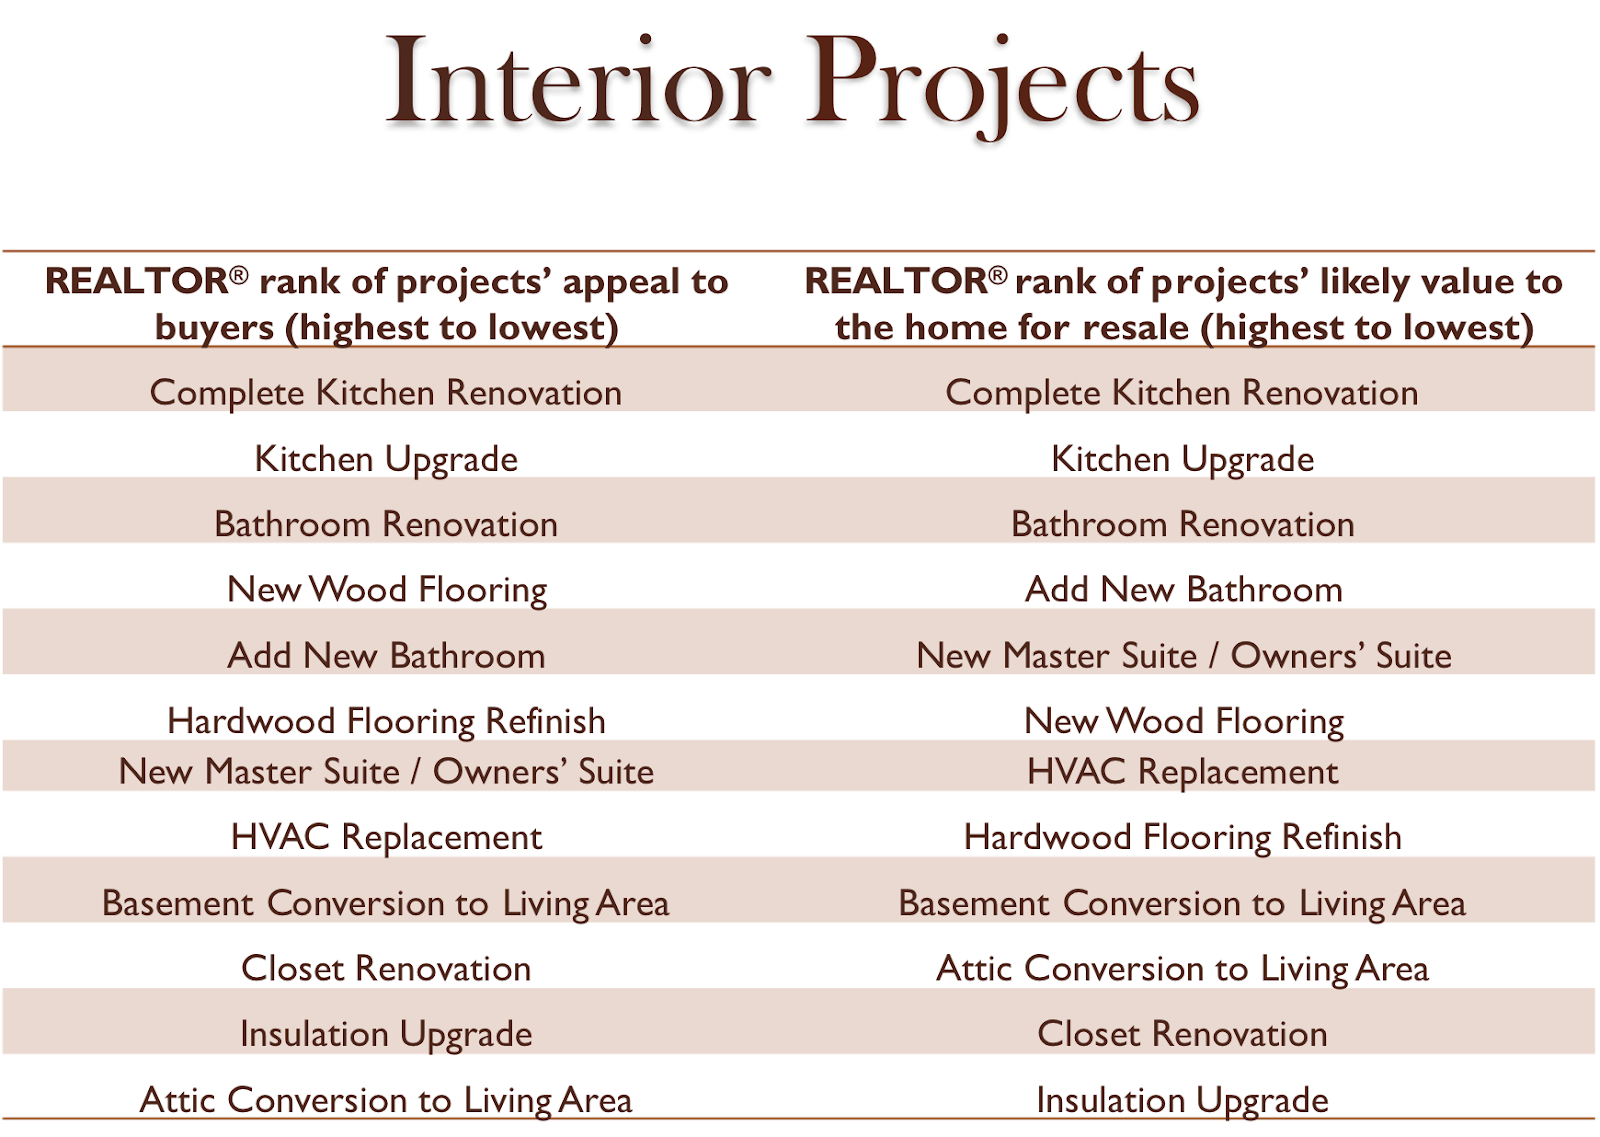 Infographic explaining recommended interior projects to help sell your house.